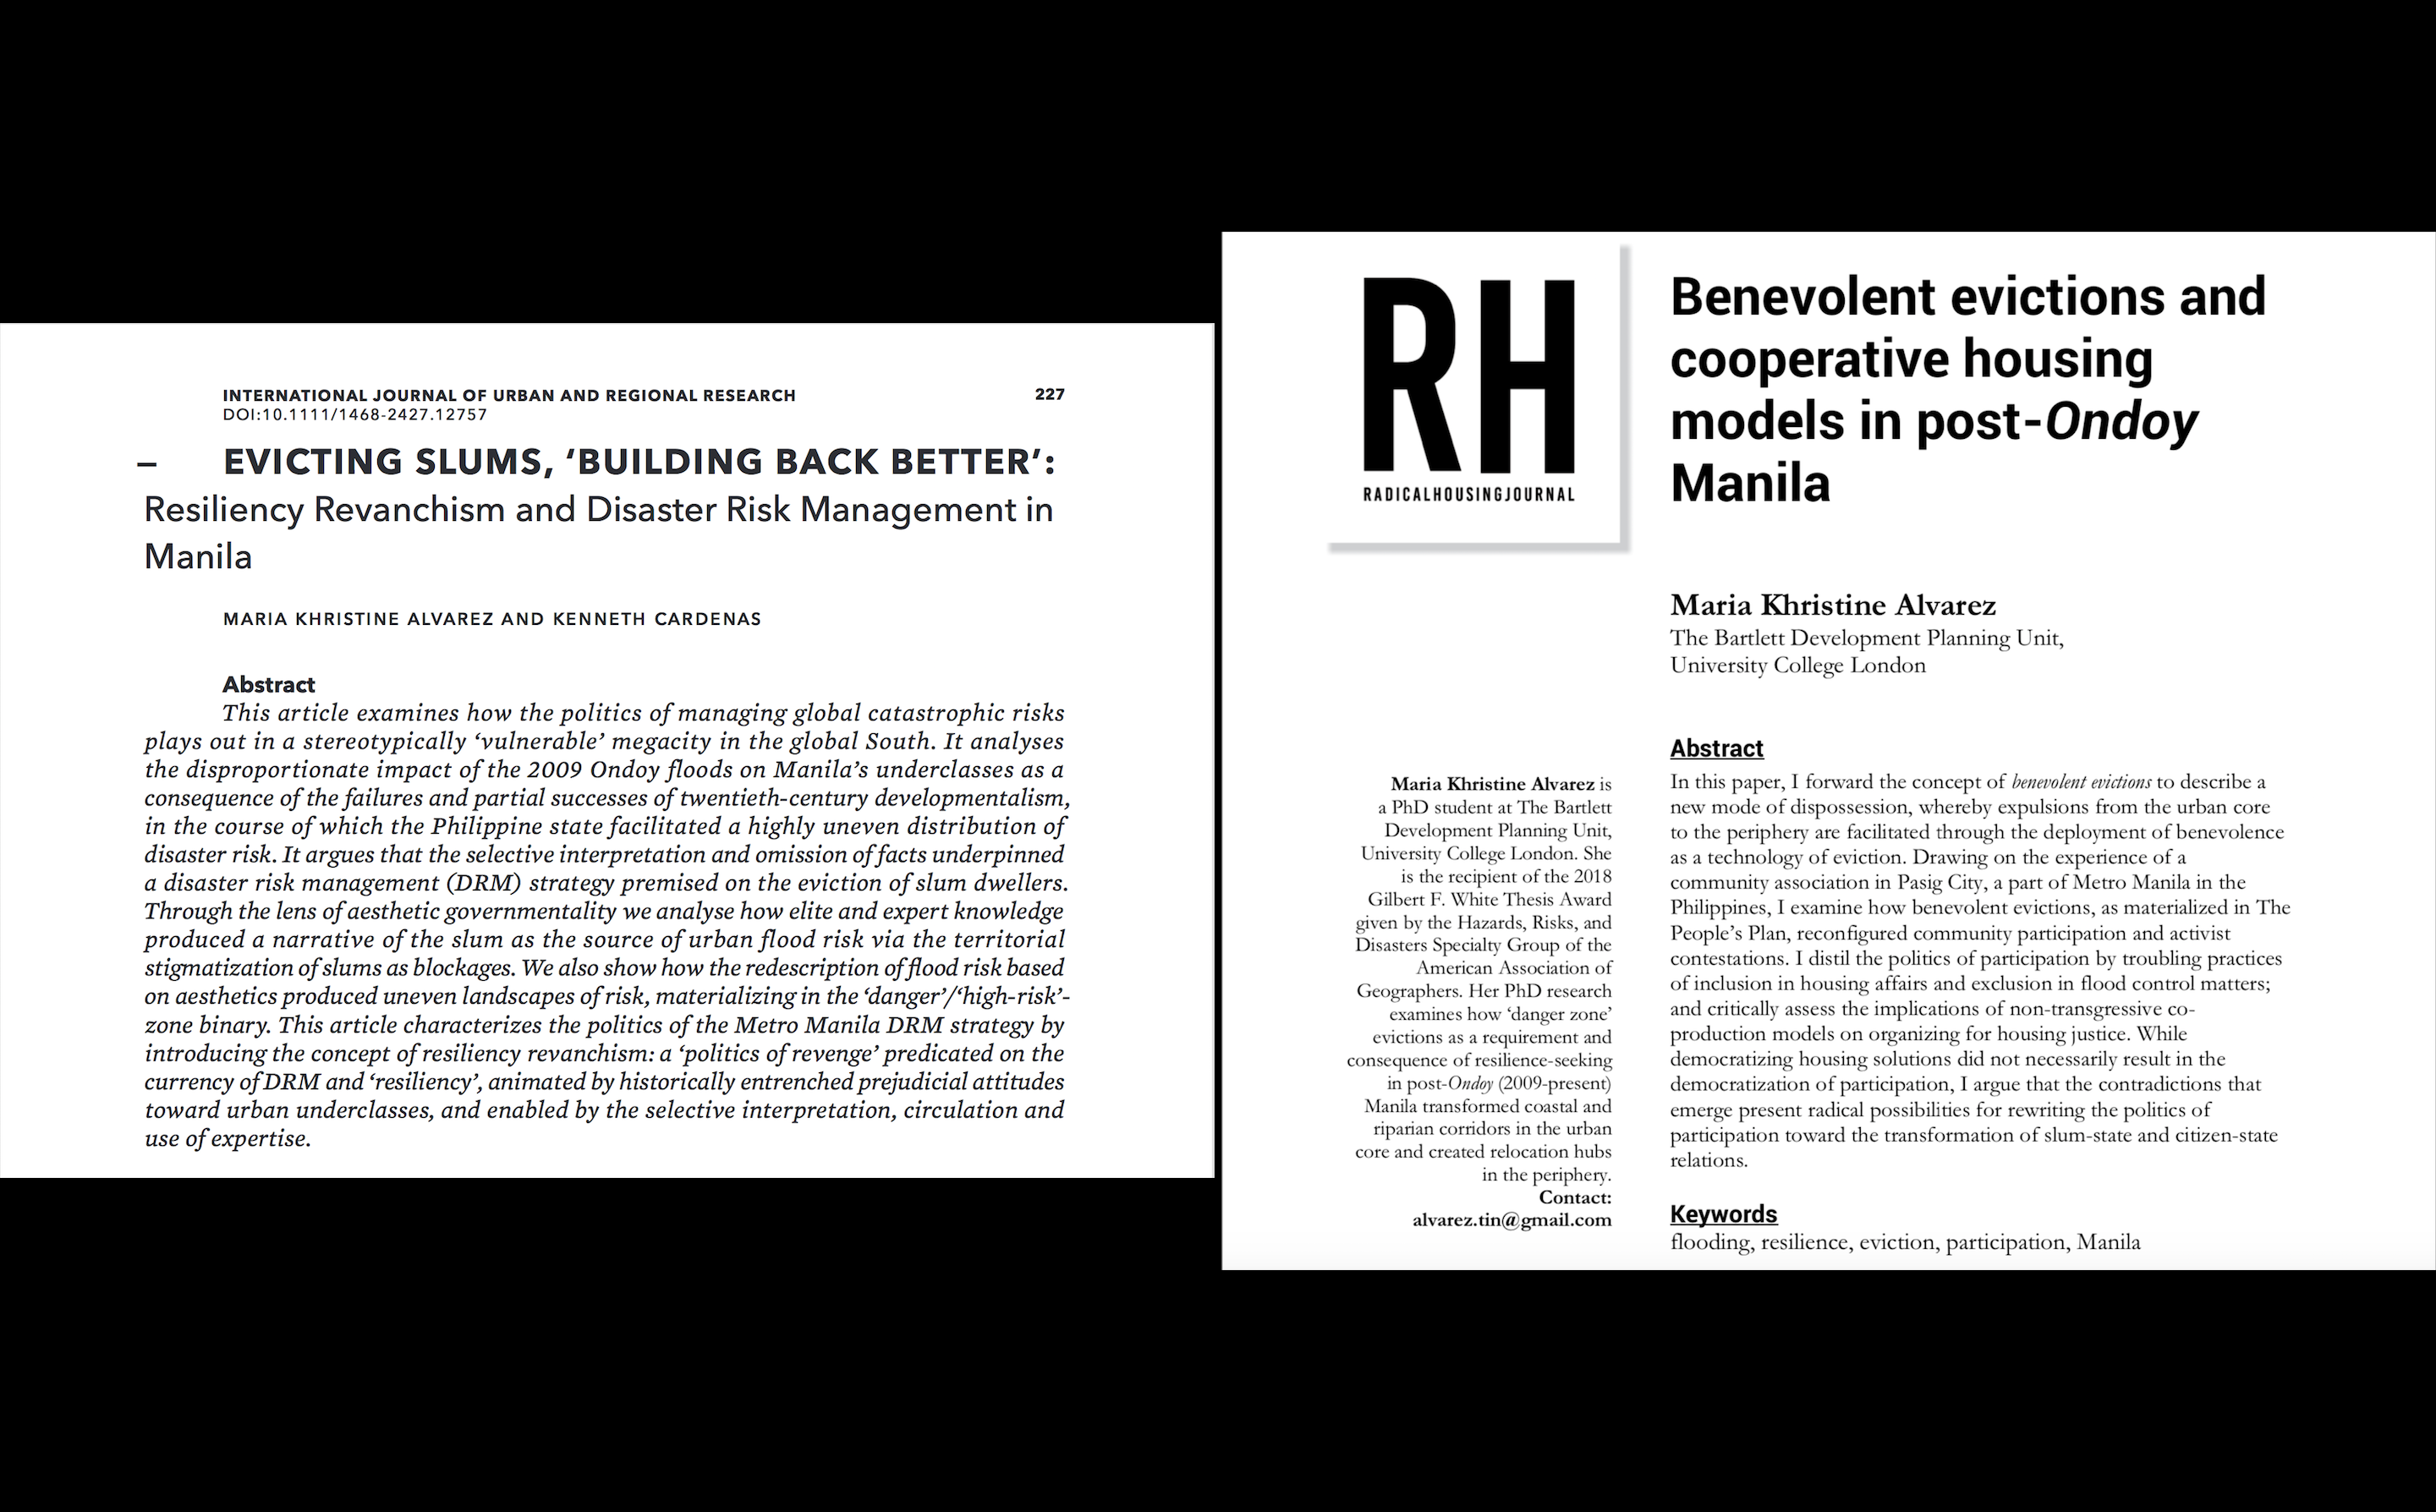 IJURR 2019 and Radical Housing Journal 2019 research articles